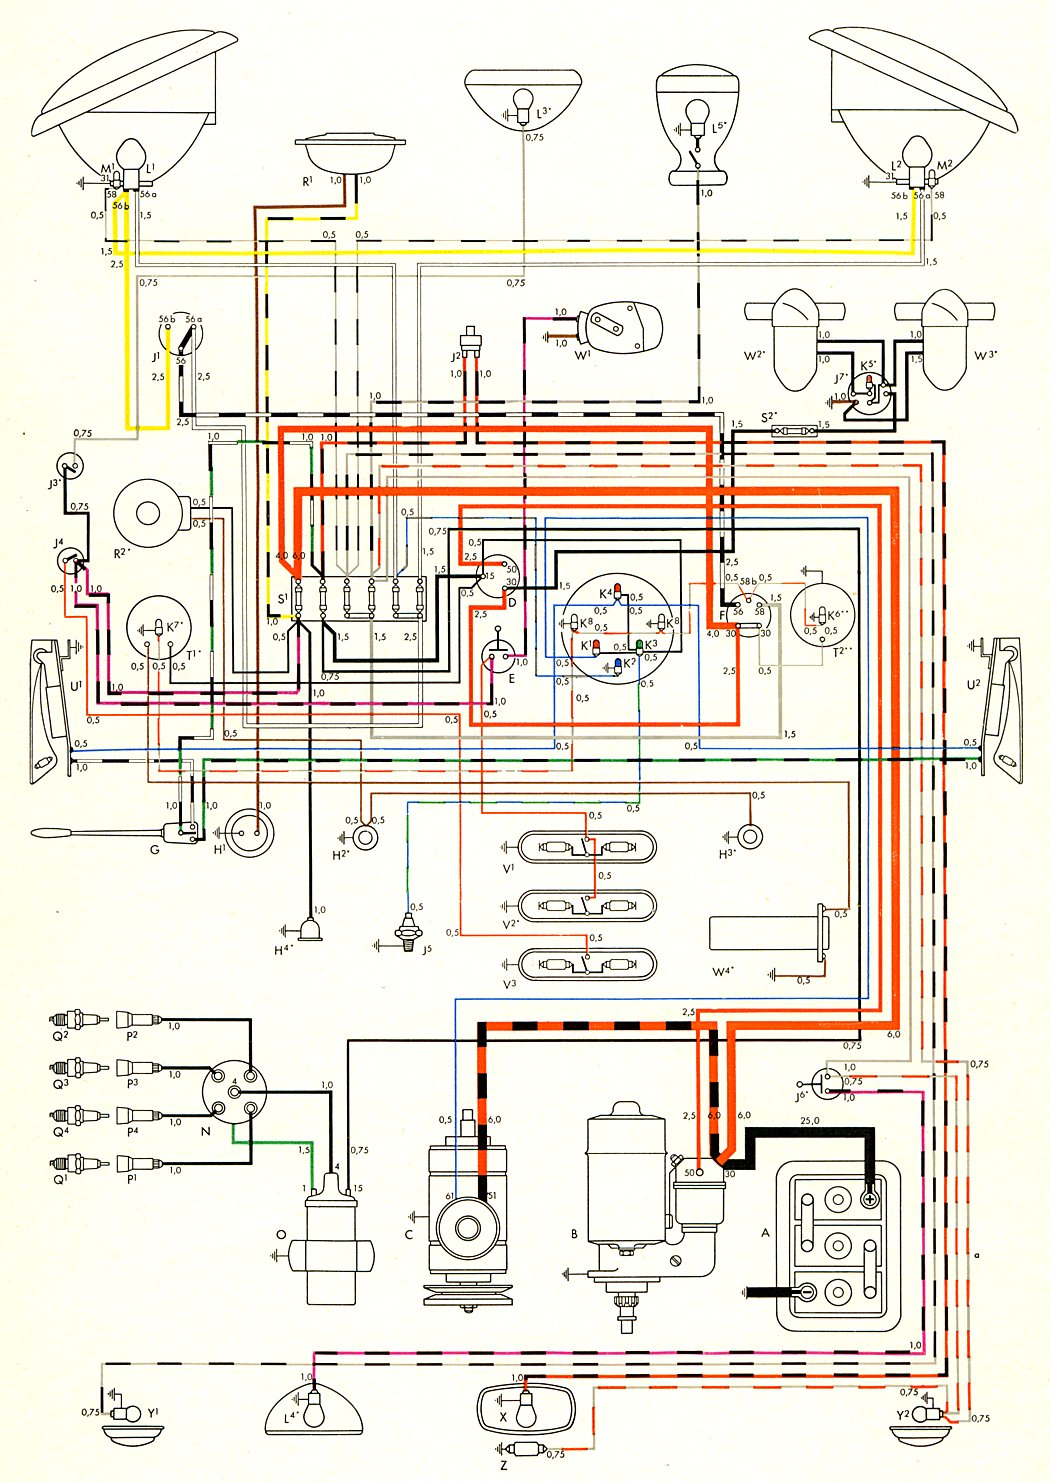 1957, Nov. 1957. Turn signal wiring